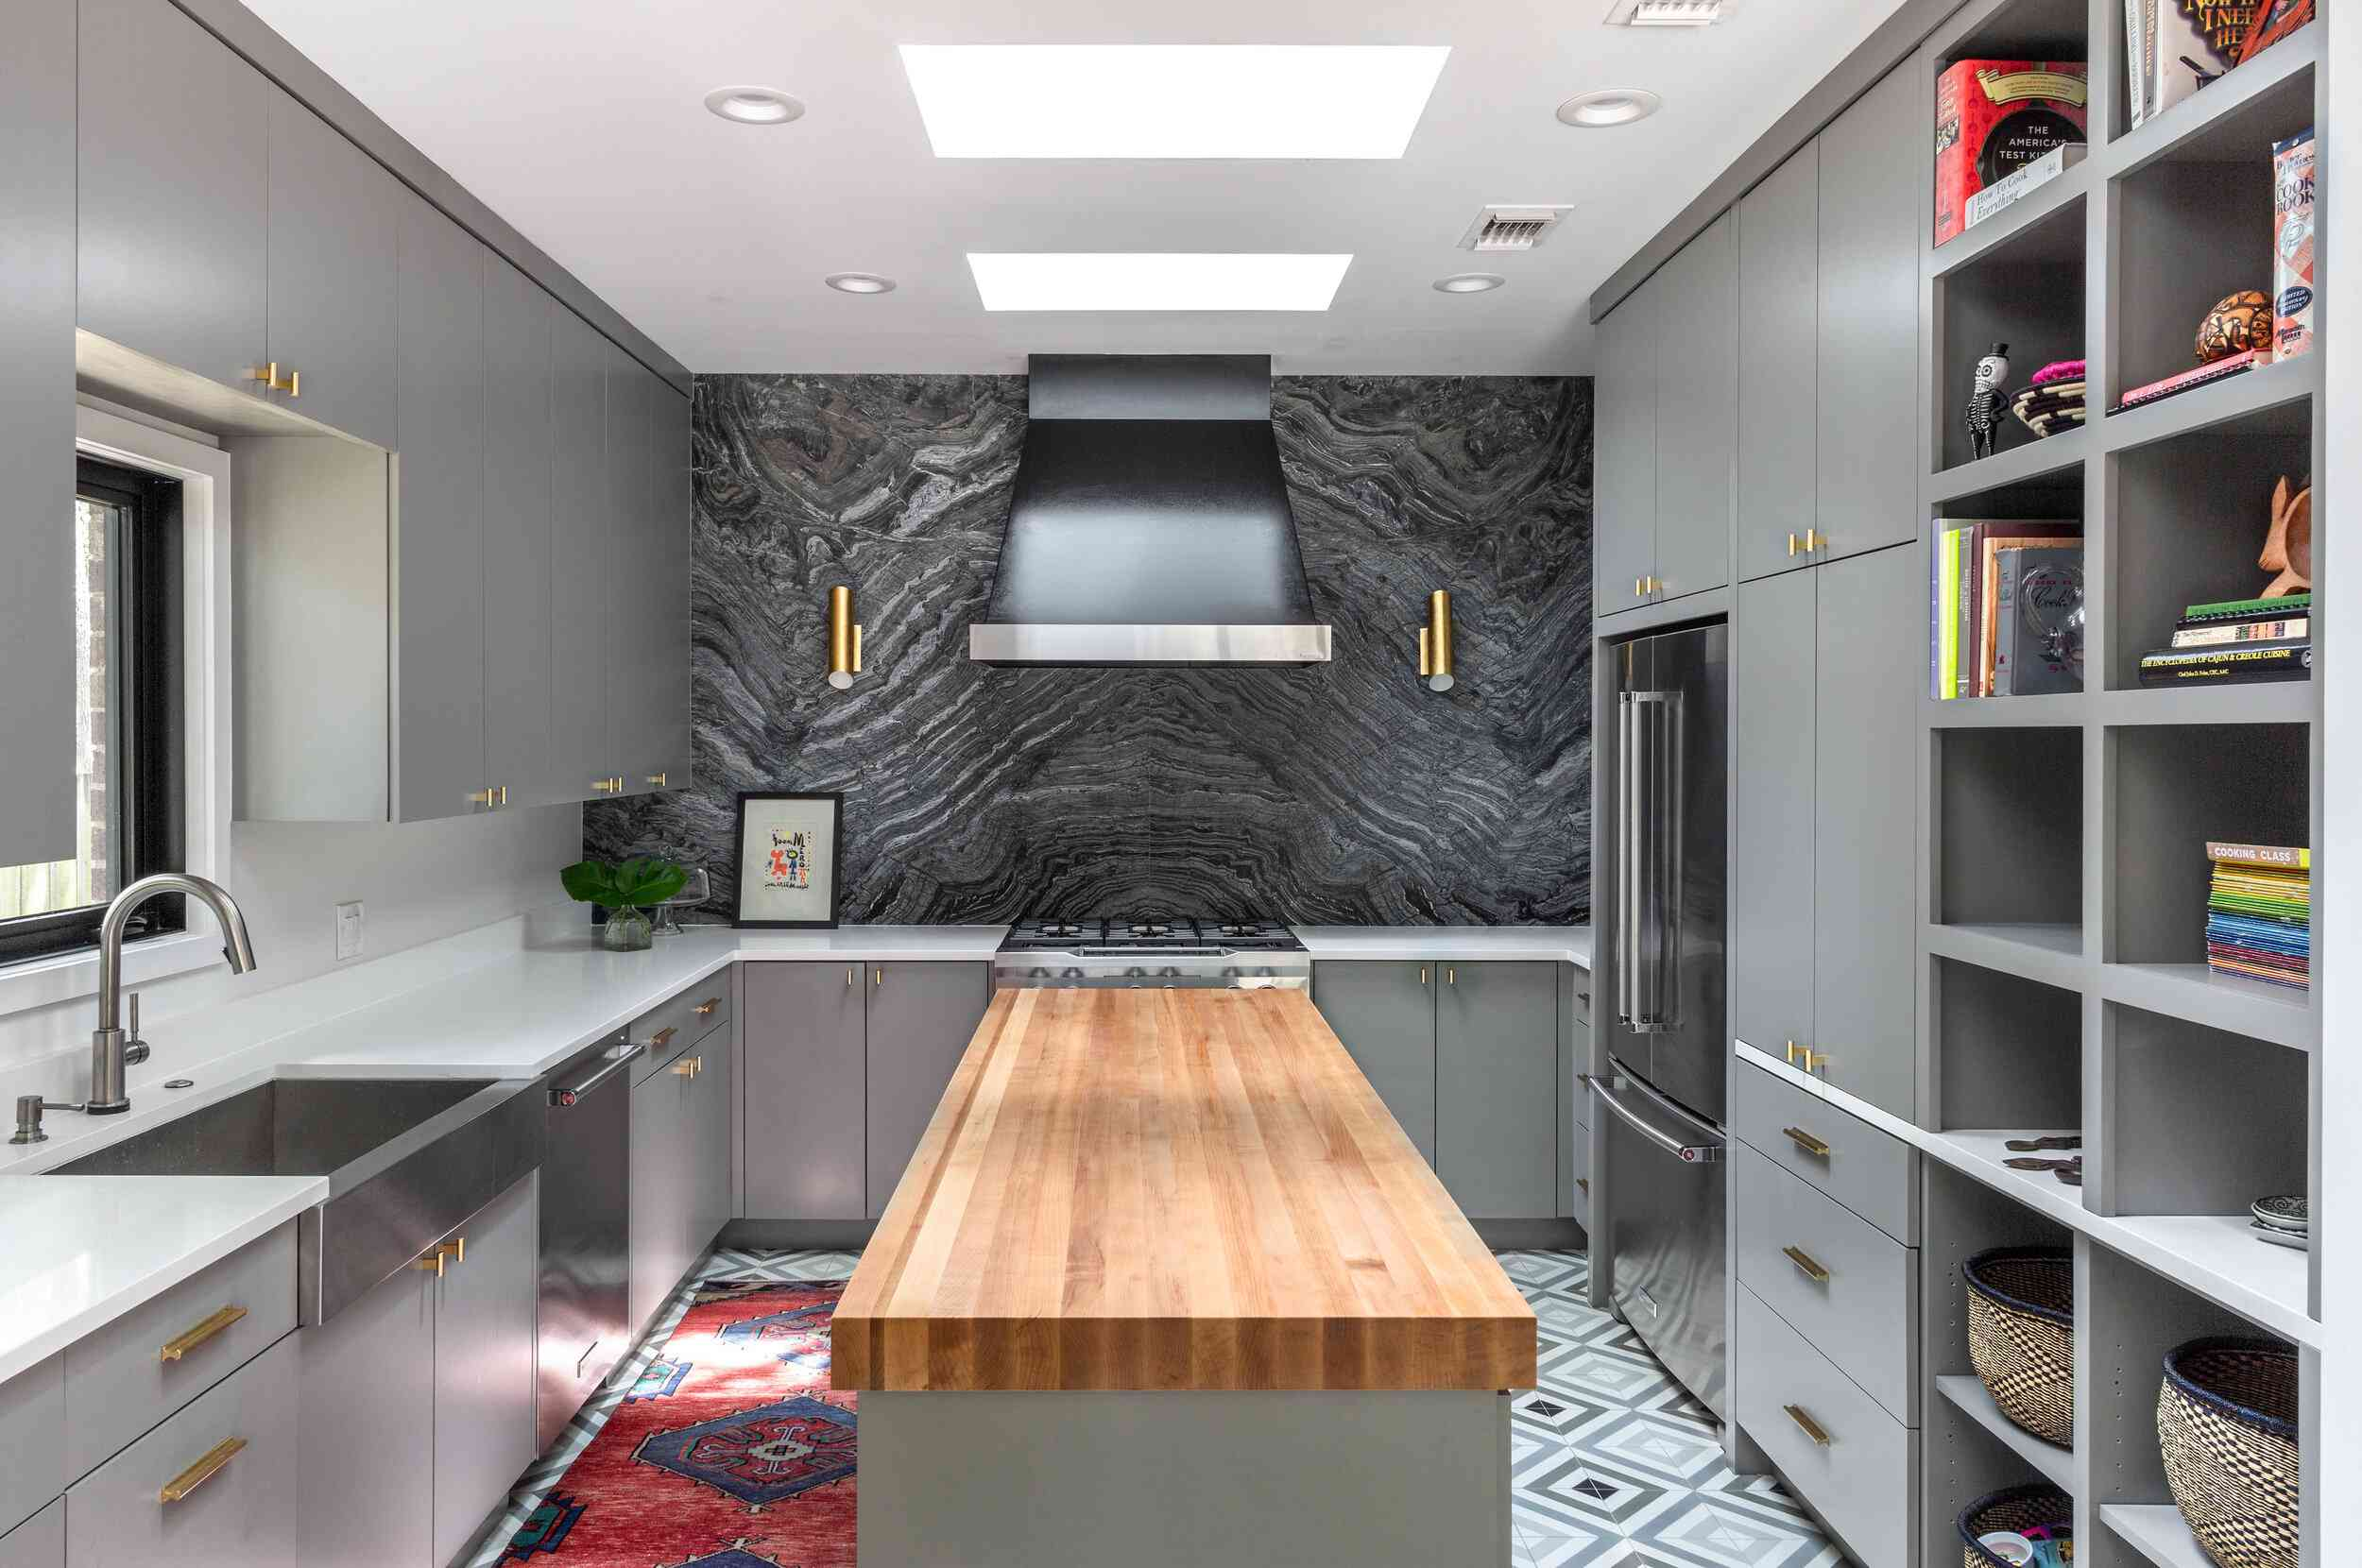 A kitchen with gray cabinets, gray tiled floors, and a charcoal backsplash